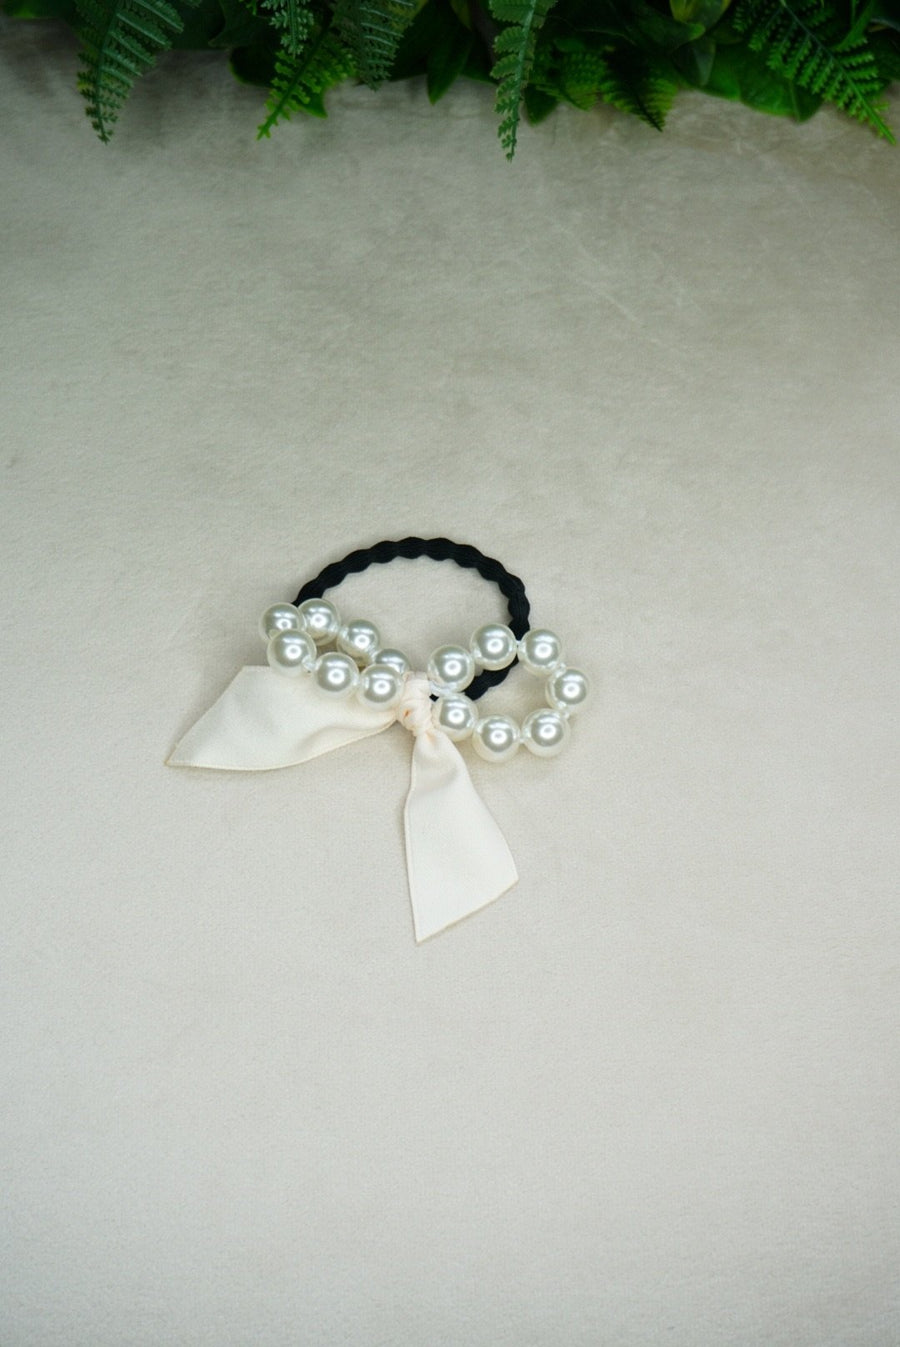 Pearl Bow Hair tie - PhivestarhairboutiquePearl Bow Hair tie